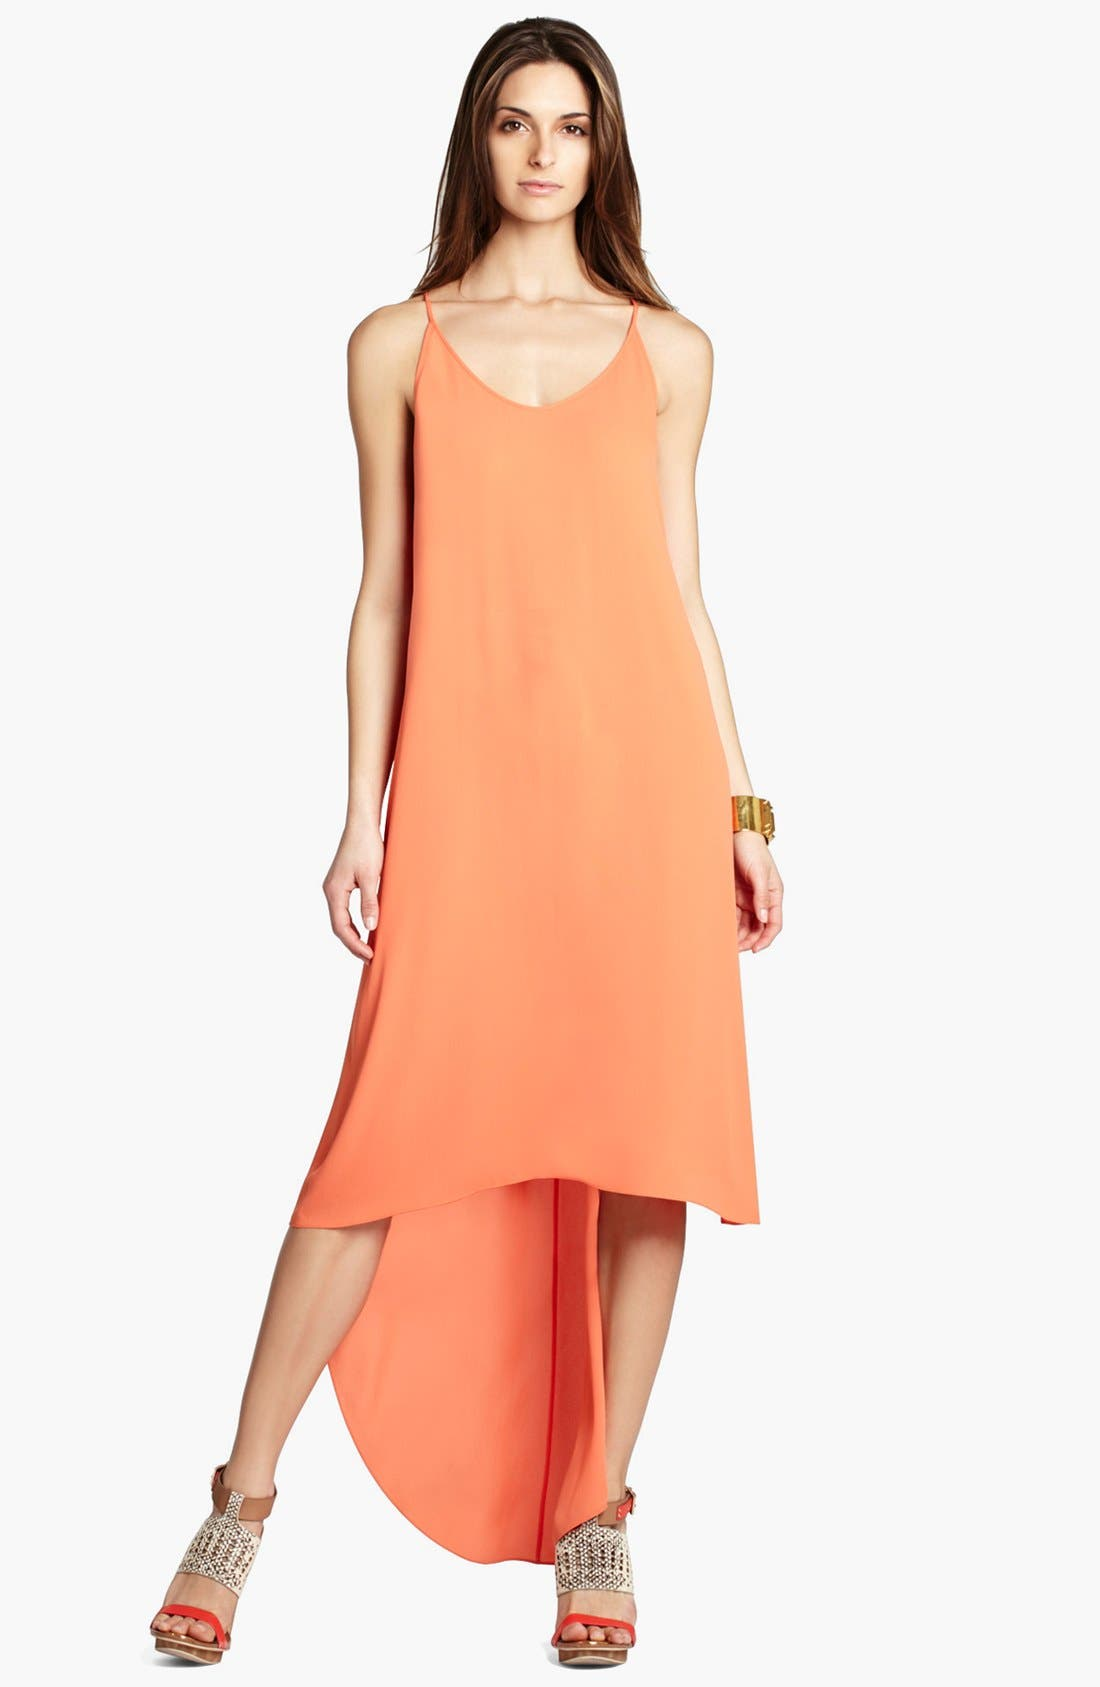 Alternate Image 1 Selected - BCBGMAXAZRIA 'Rory' High/Low Dress